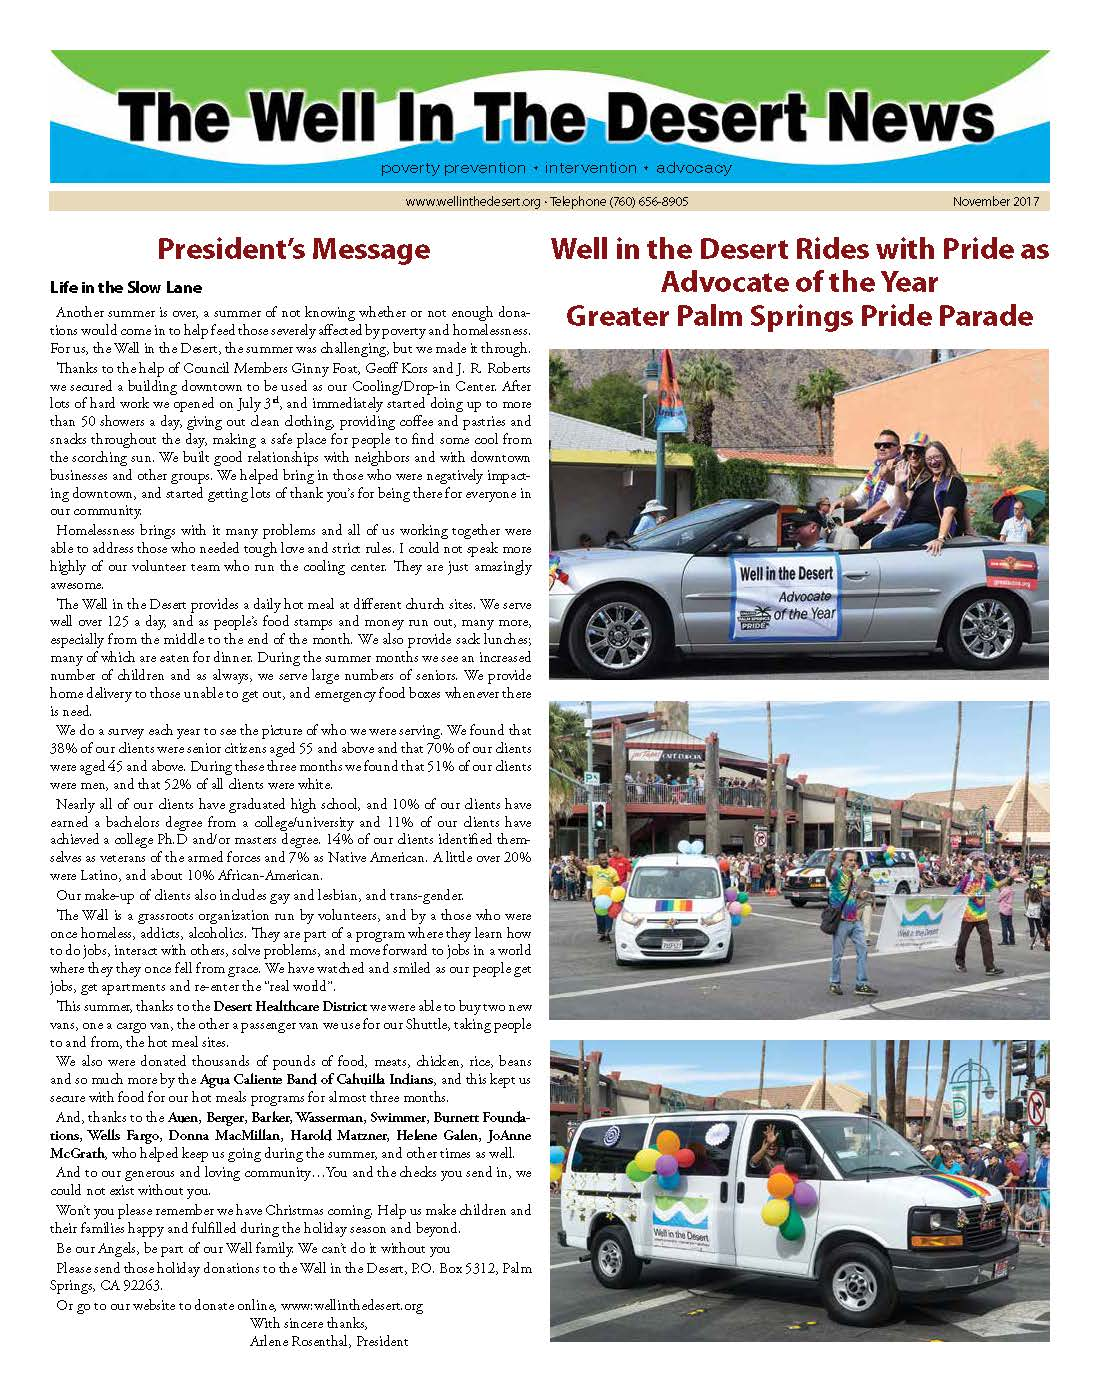 WellintheDesertNews_6_17_Proof2_Page_01.jpg